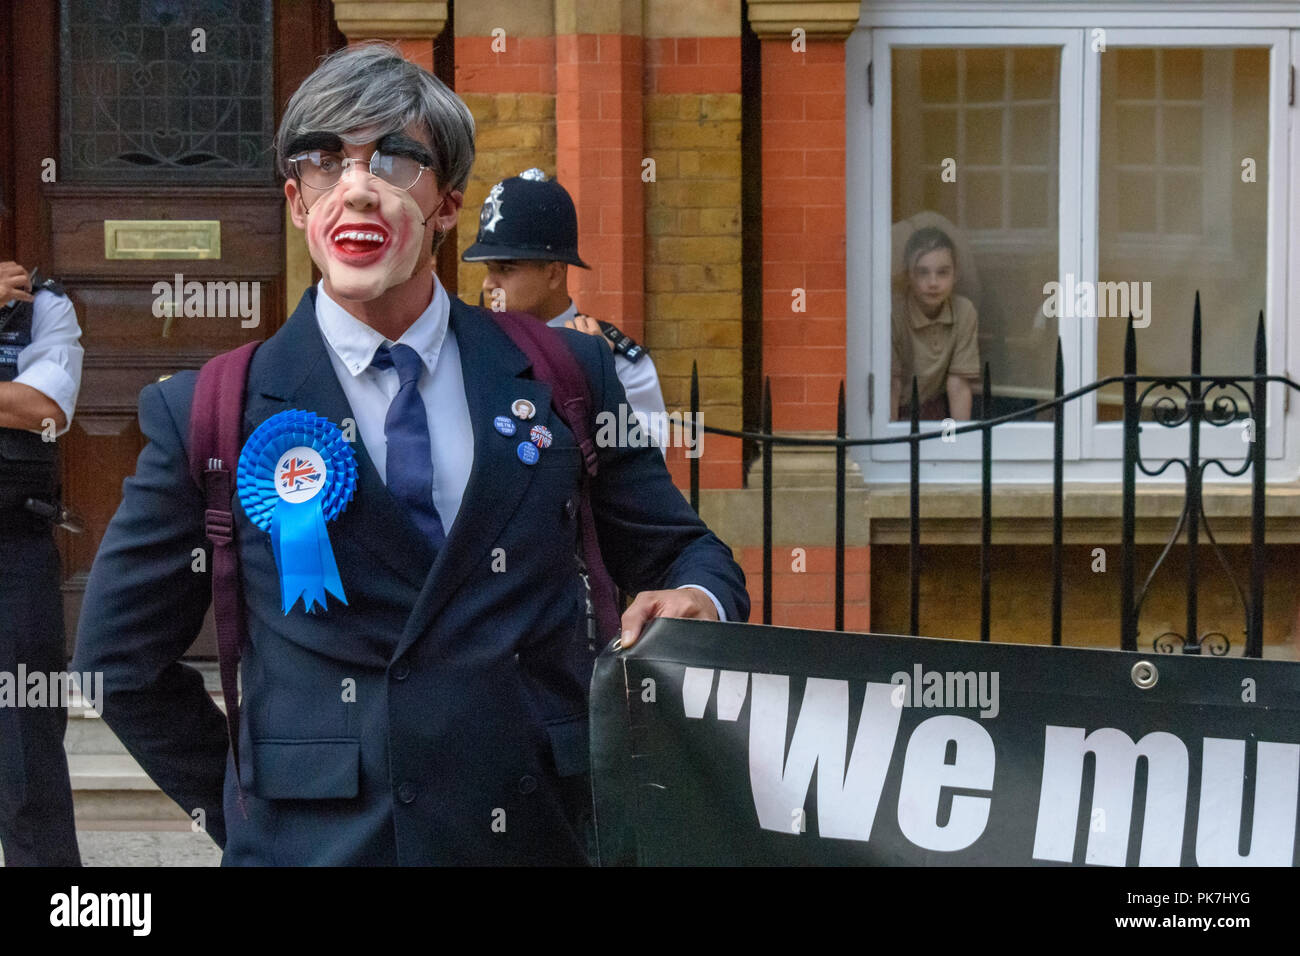 London, UK. 11th Sept 2018. One of the Rees-Mogg children watches from the window as Adam Clifford, dressed as Jacob Rees-Mogg, holds a banner at the Class War protest  at his £5.6m Westminster town house of Jacob Rees-Mogg. Class War say Nanny Cook, Jacob Rees-Mogg's nanny who now looks after him and his six children, ceased to exist as an independent human 50 years ago and has been subsumed into the Mogg family as if she was being confined in the tower of a gothic mansion. The protest starred former Class War Westminster candidate Adam Clifford as Jacob Rees-Mogg and Jane Nicholl as Nanny CrStock Photo